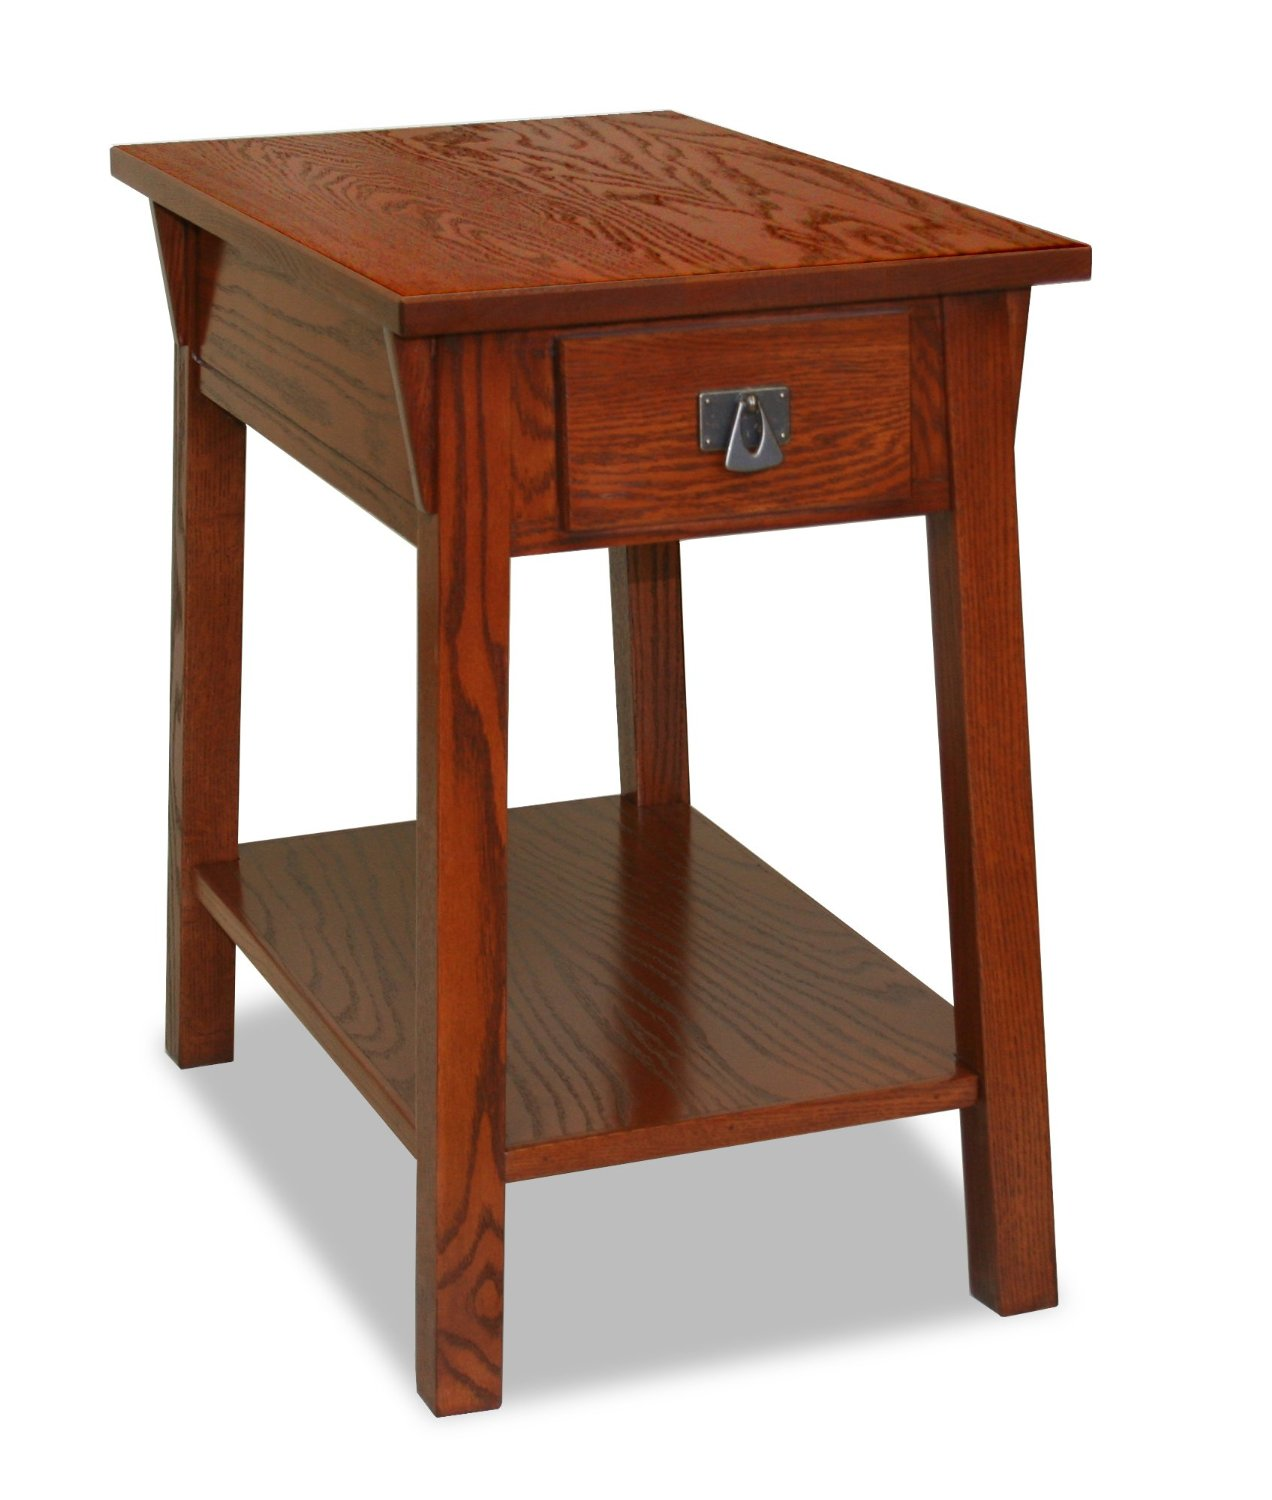 Perfect small end table with drawer homesfeed for Small wood end table